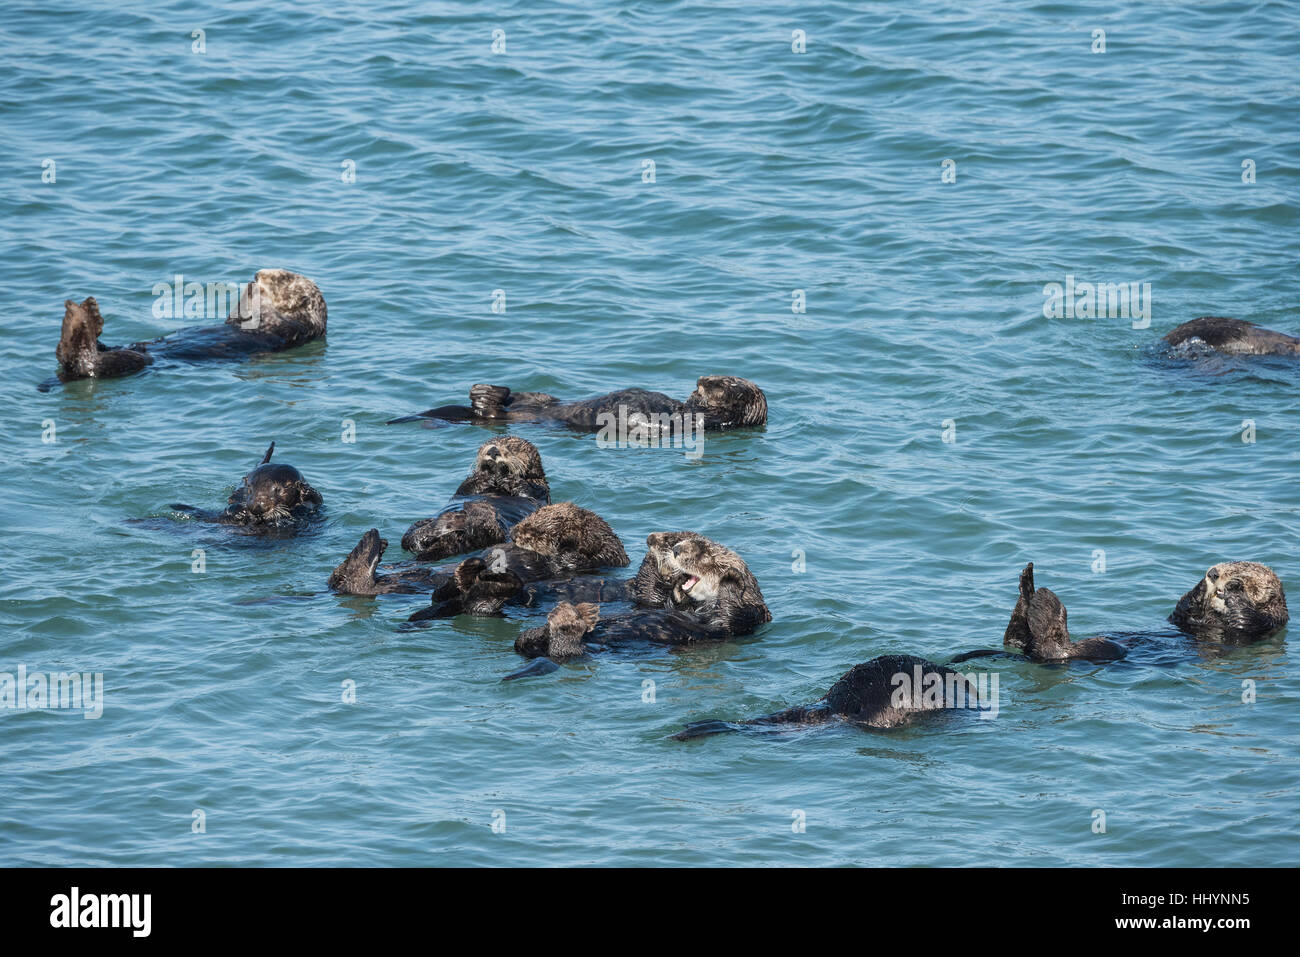 California sea otters or southern sea otters, Enhydra lutris nereis ( threatened ), resting in a raft, Elkhorn Slough, Moss Landing, California, USA Stock Photo